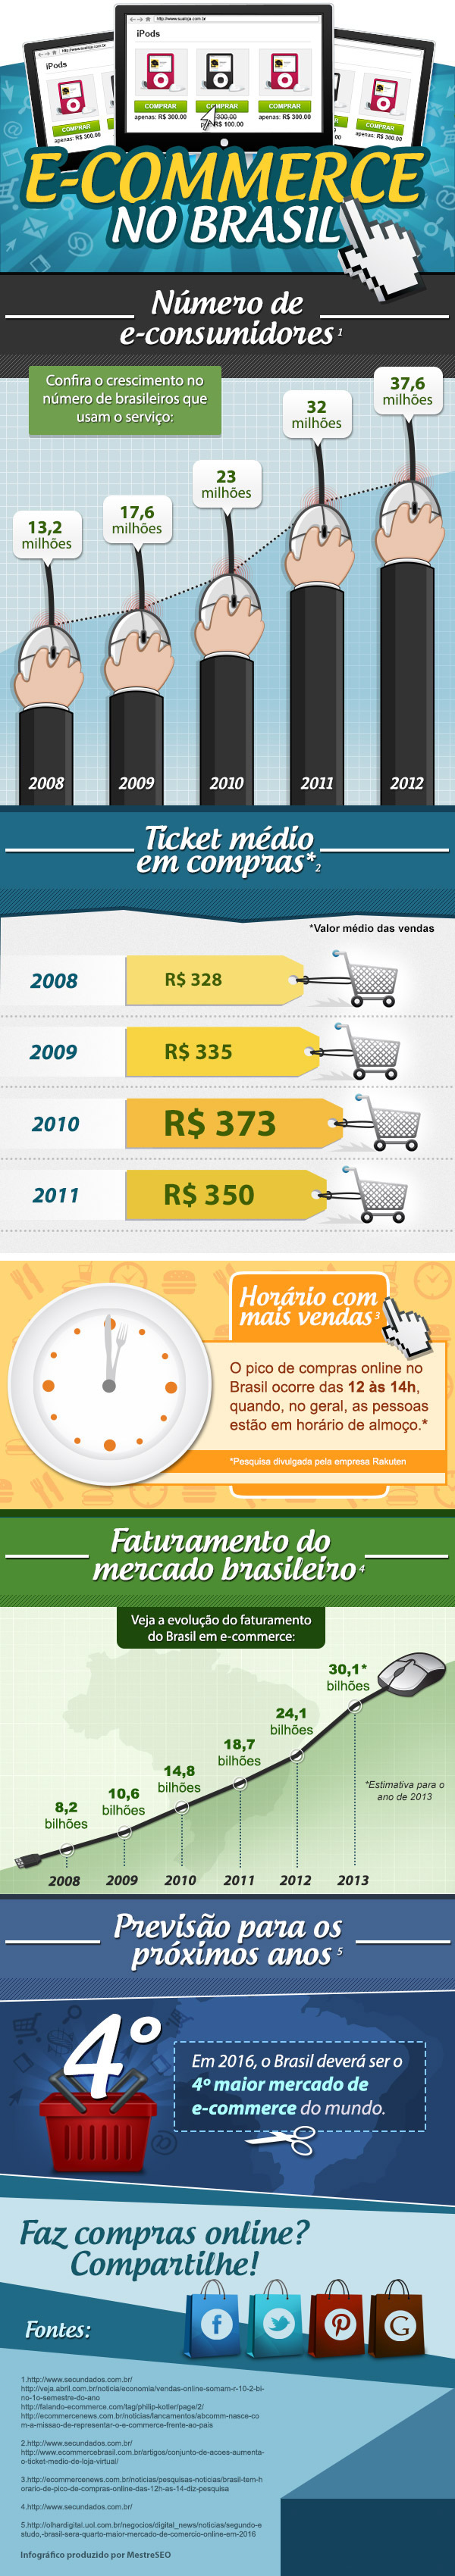 infografico-ecommerce post